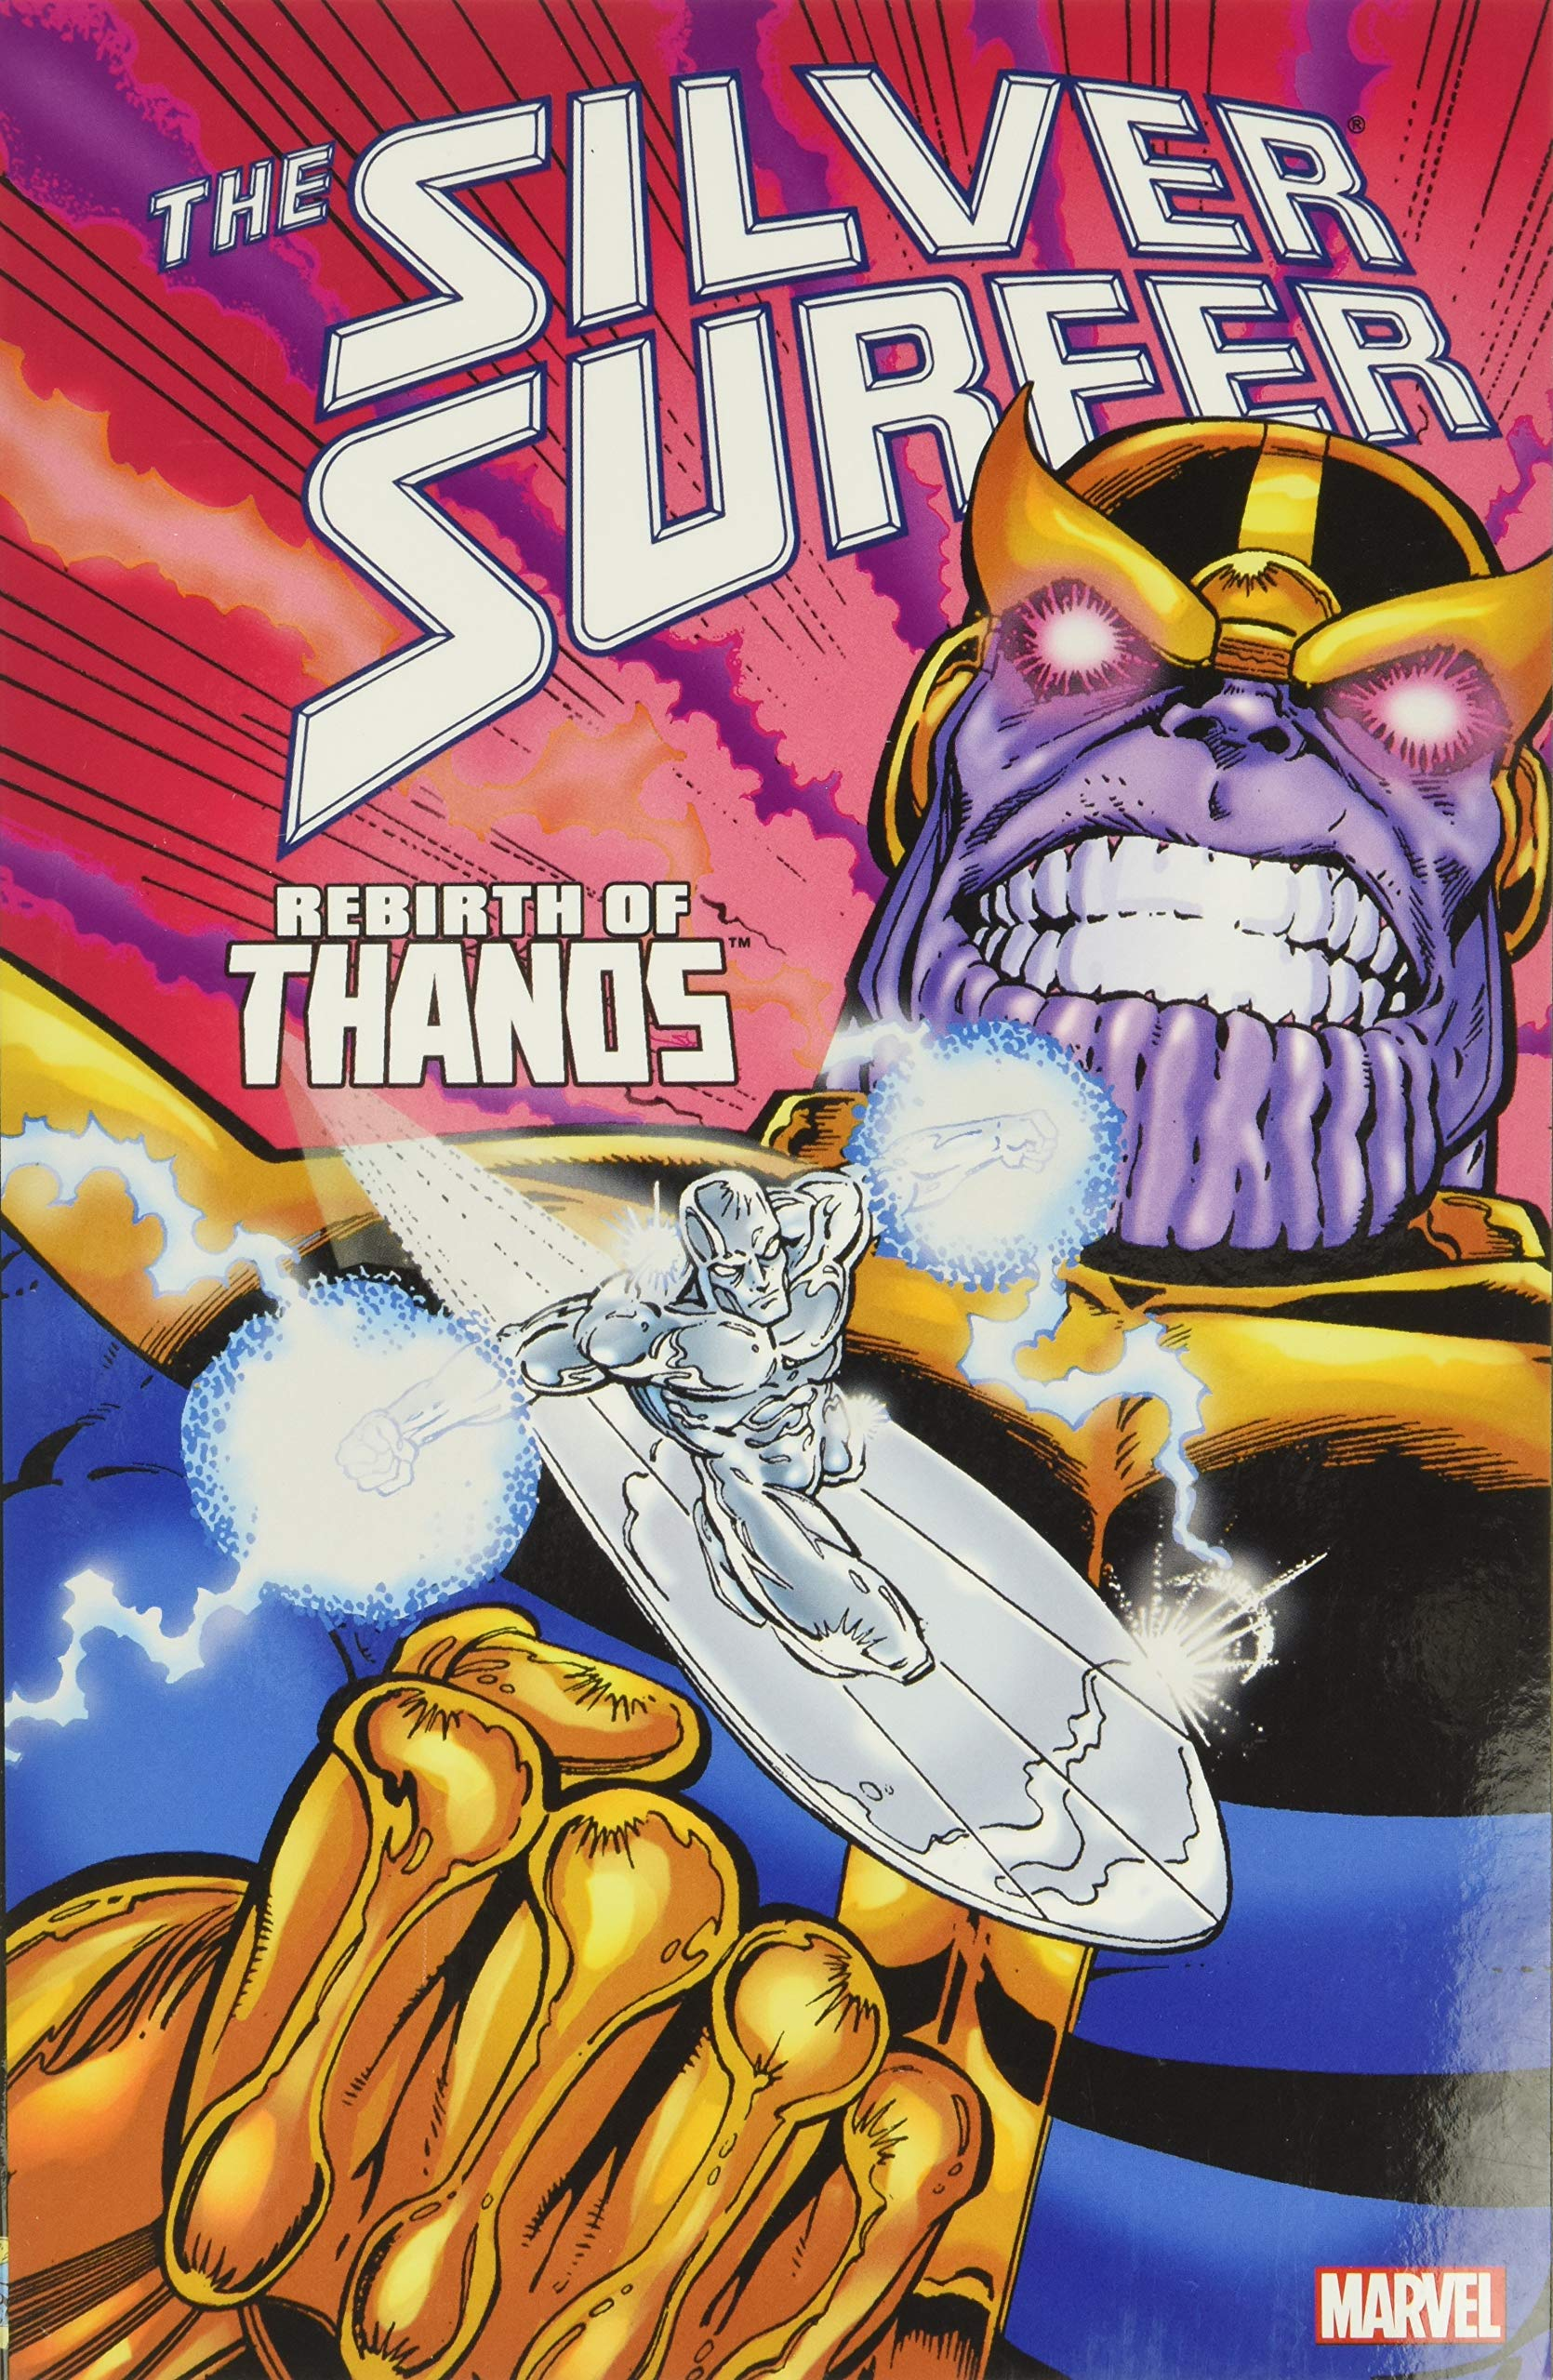 Rebirth Of Thanos-HB Marvel Premiere Classic Silver Surfer